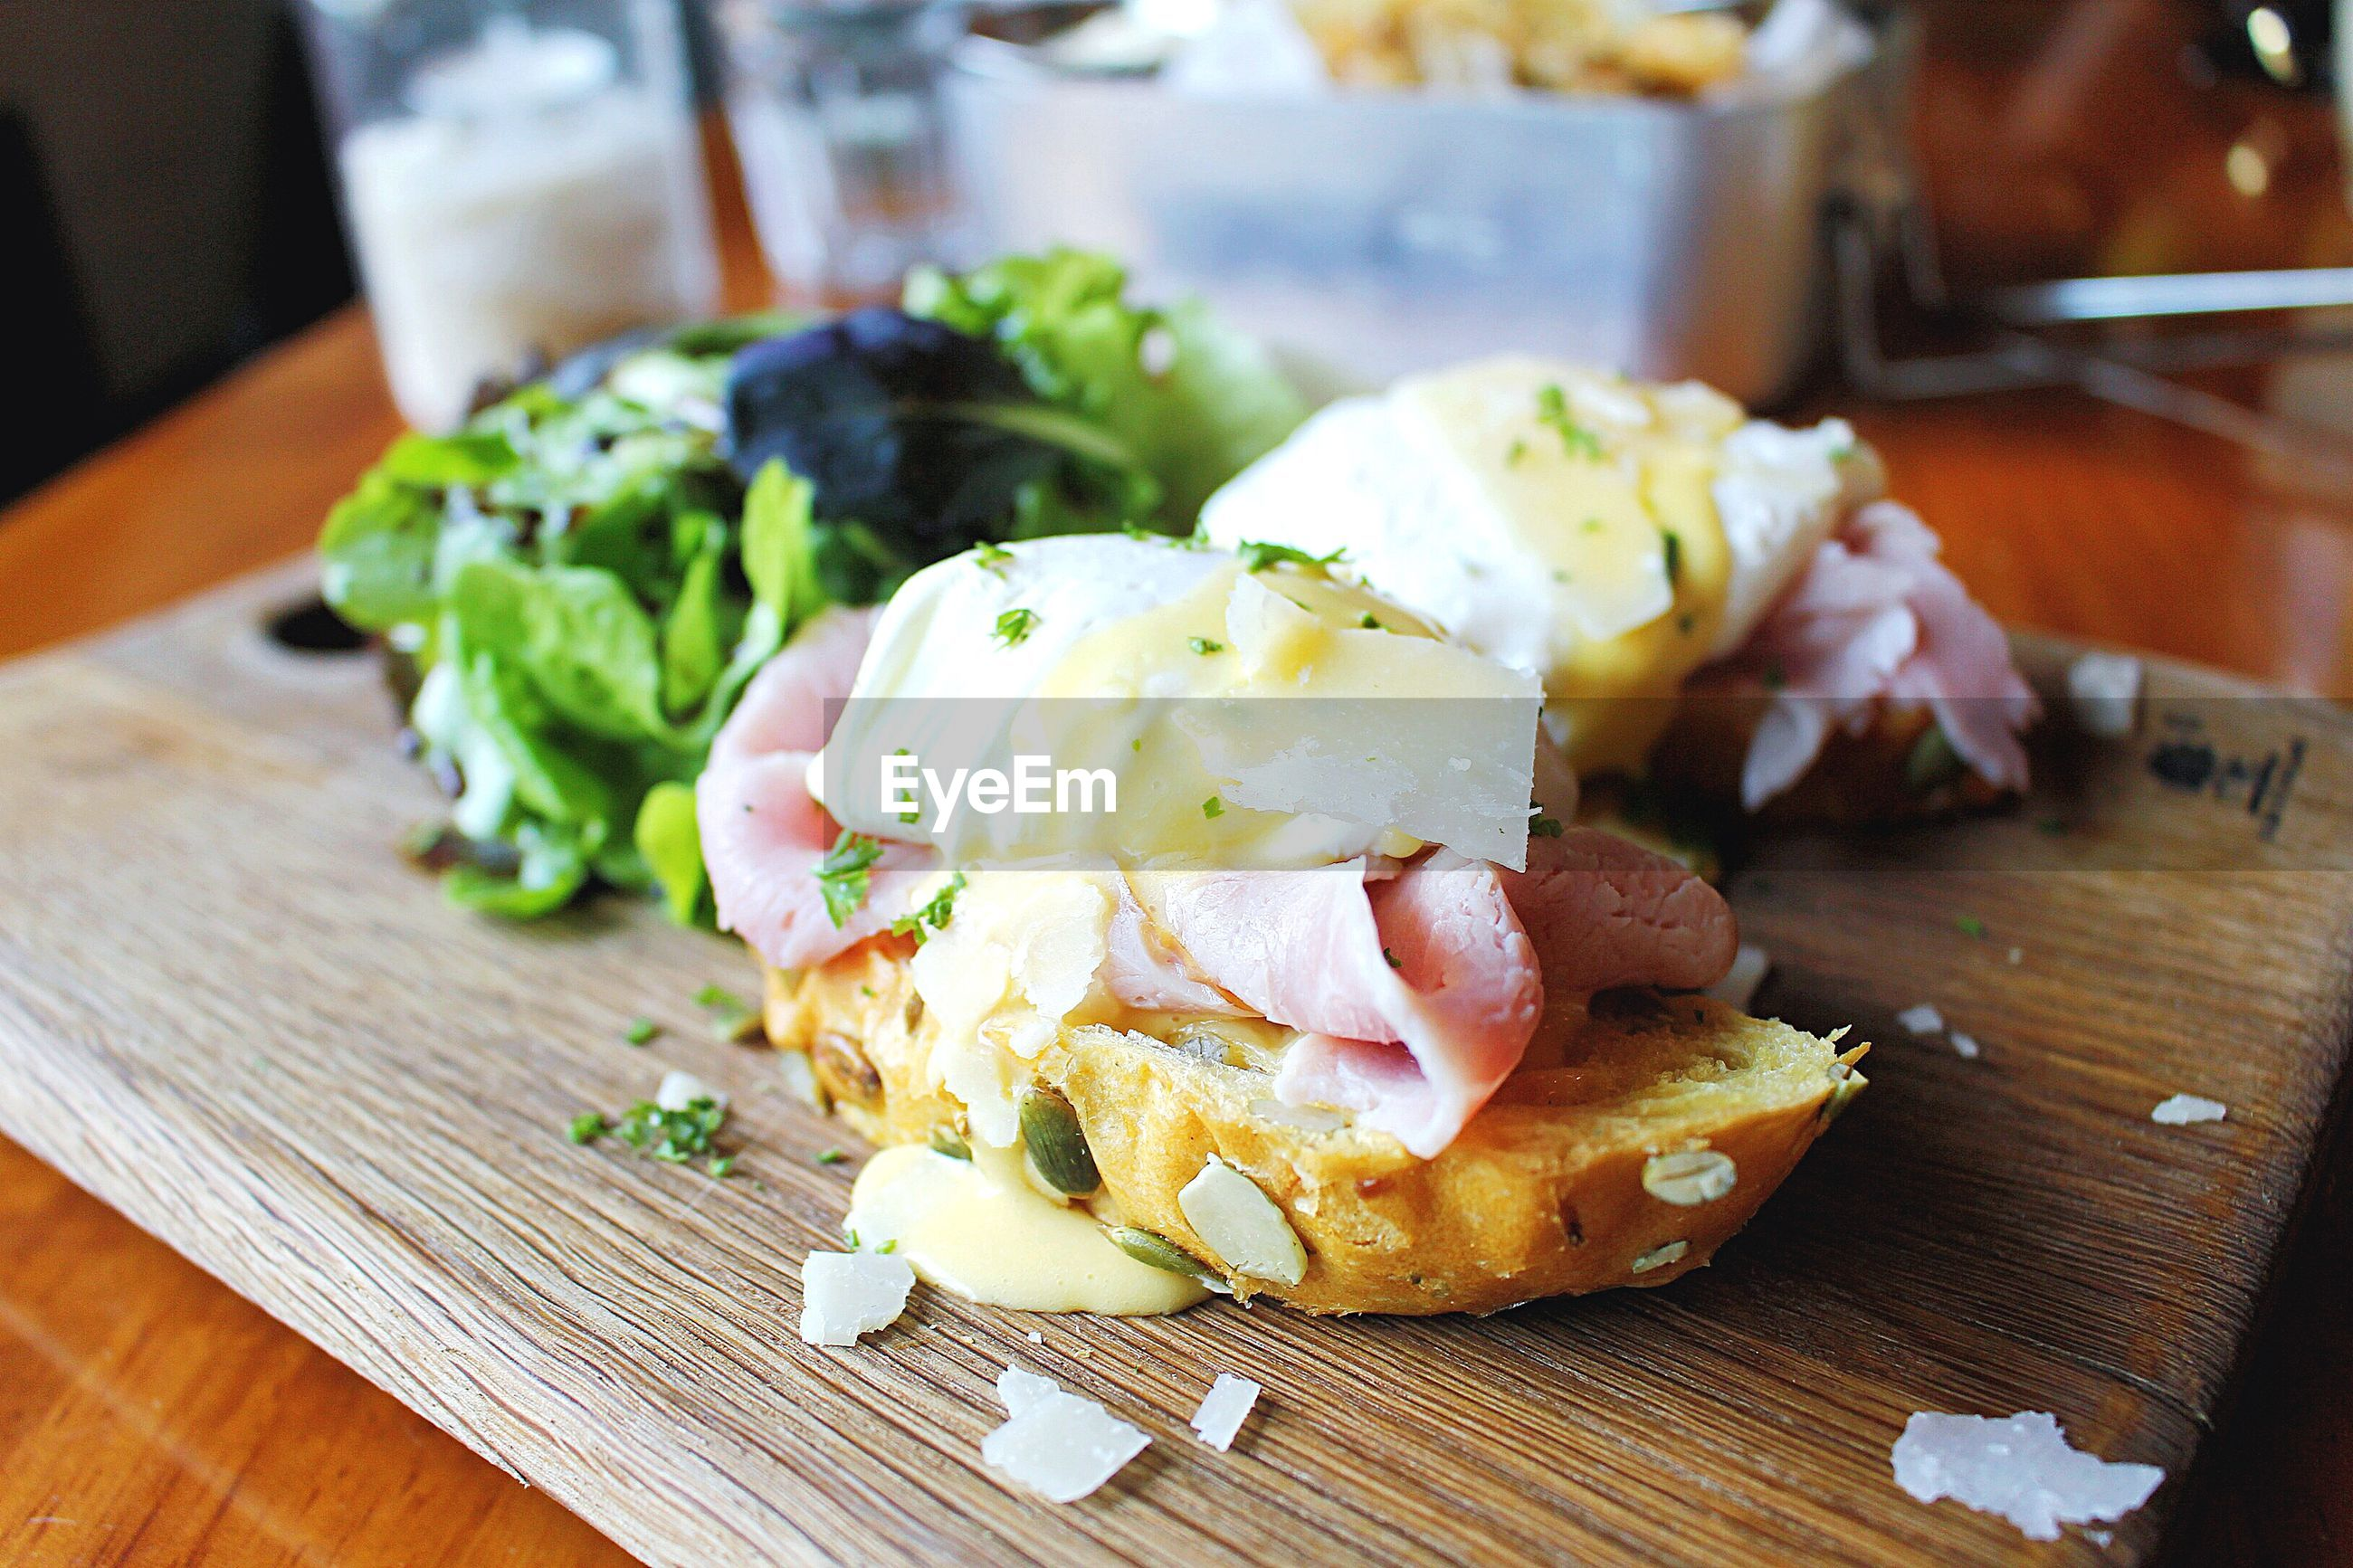 food and drink, food, freshness, indoors, ready-to-eat, table, still life, plate, close-up, indulgence, serving size, meal, healthy eating, meat, vegetable, slice, sandwich, bread, focus on foreground